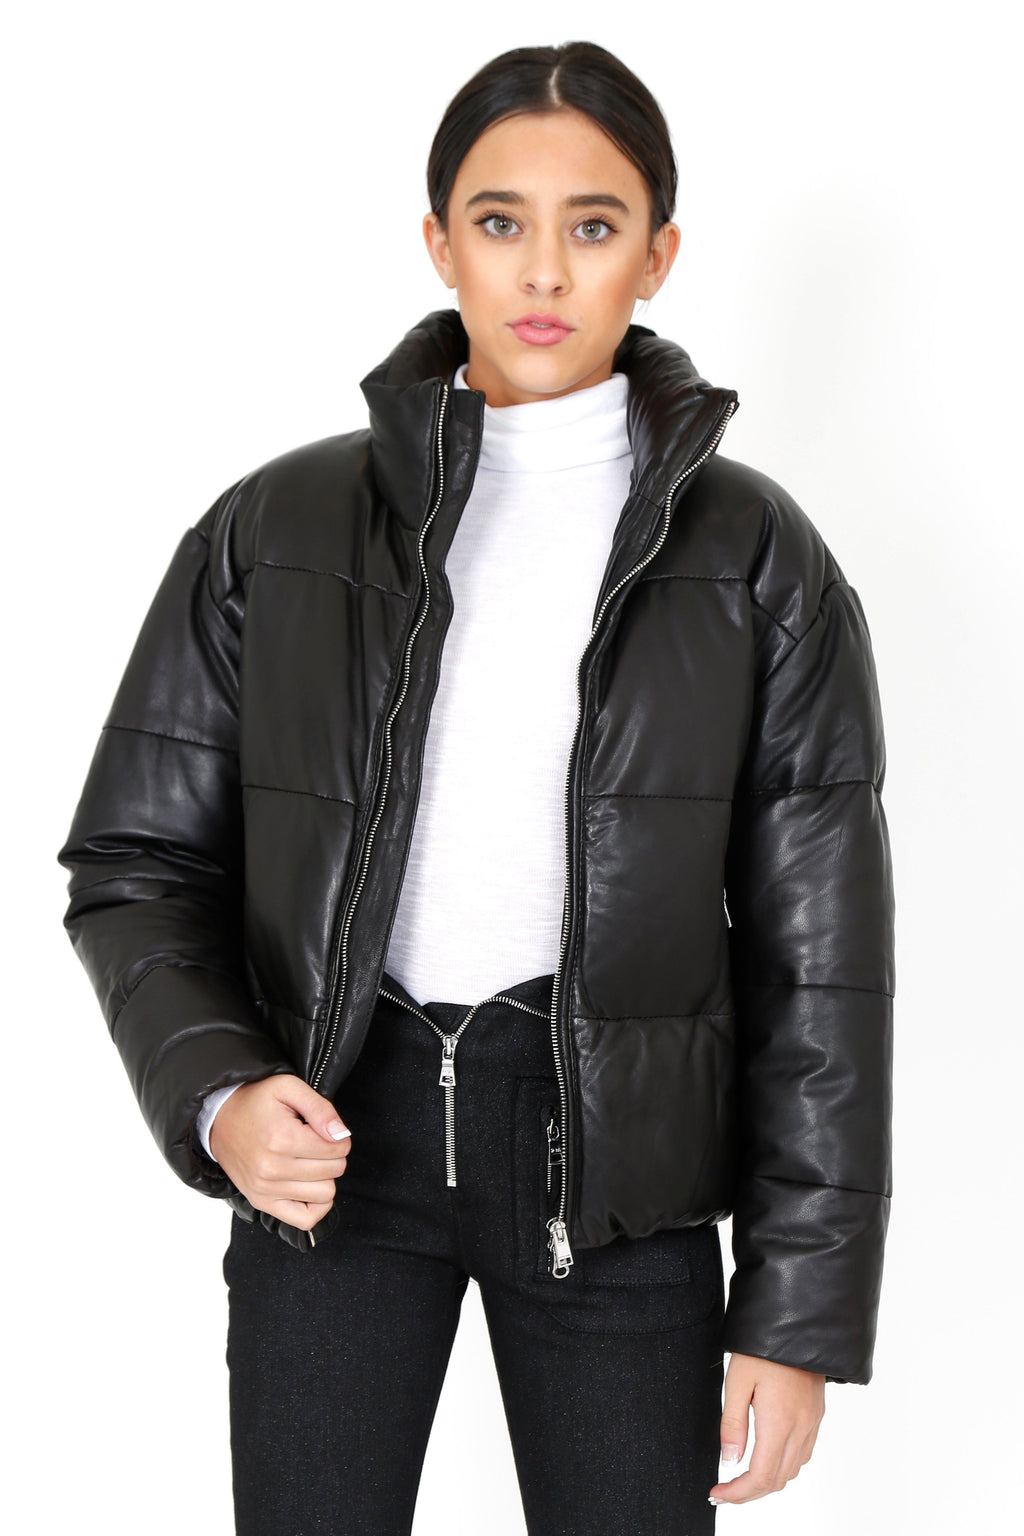 LAMARQUE | Iris Leather Puffler Jacket - Black